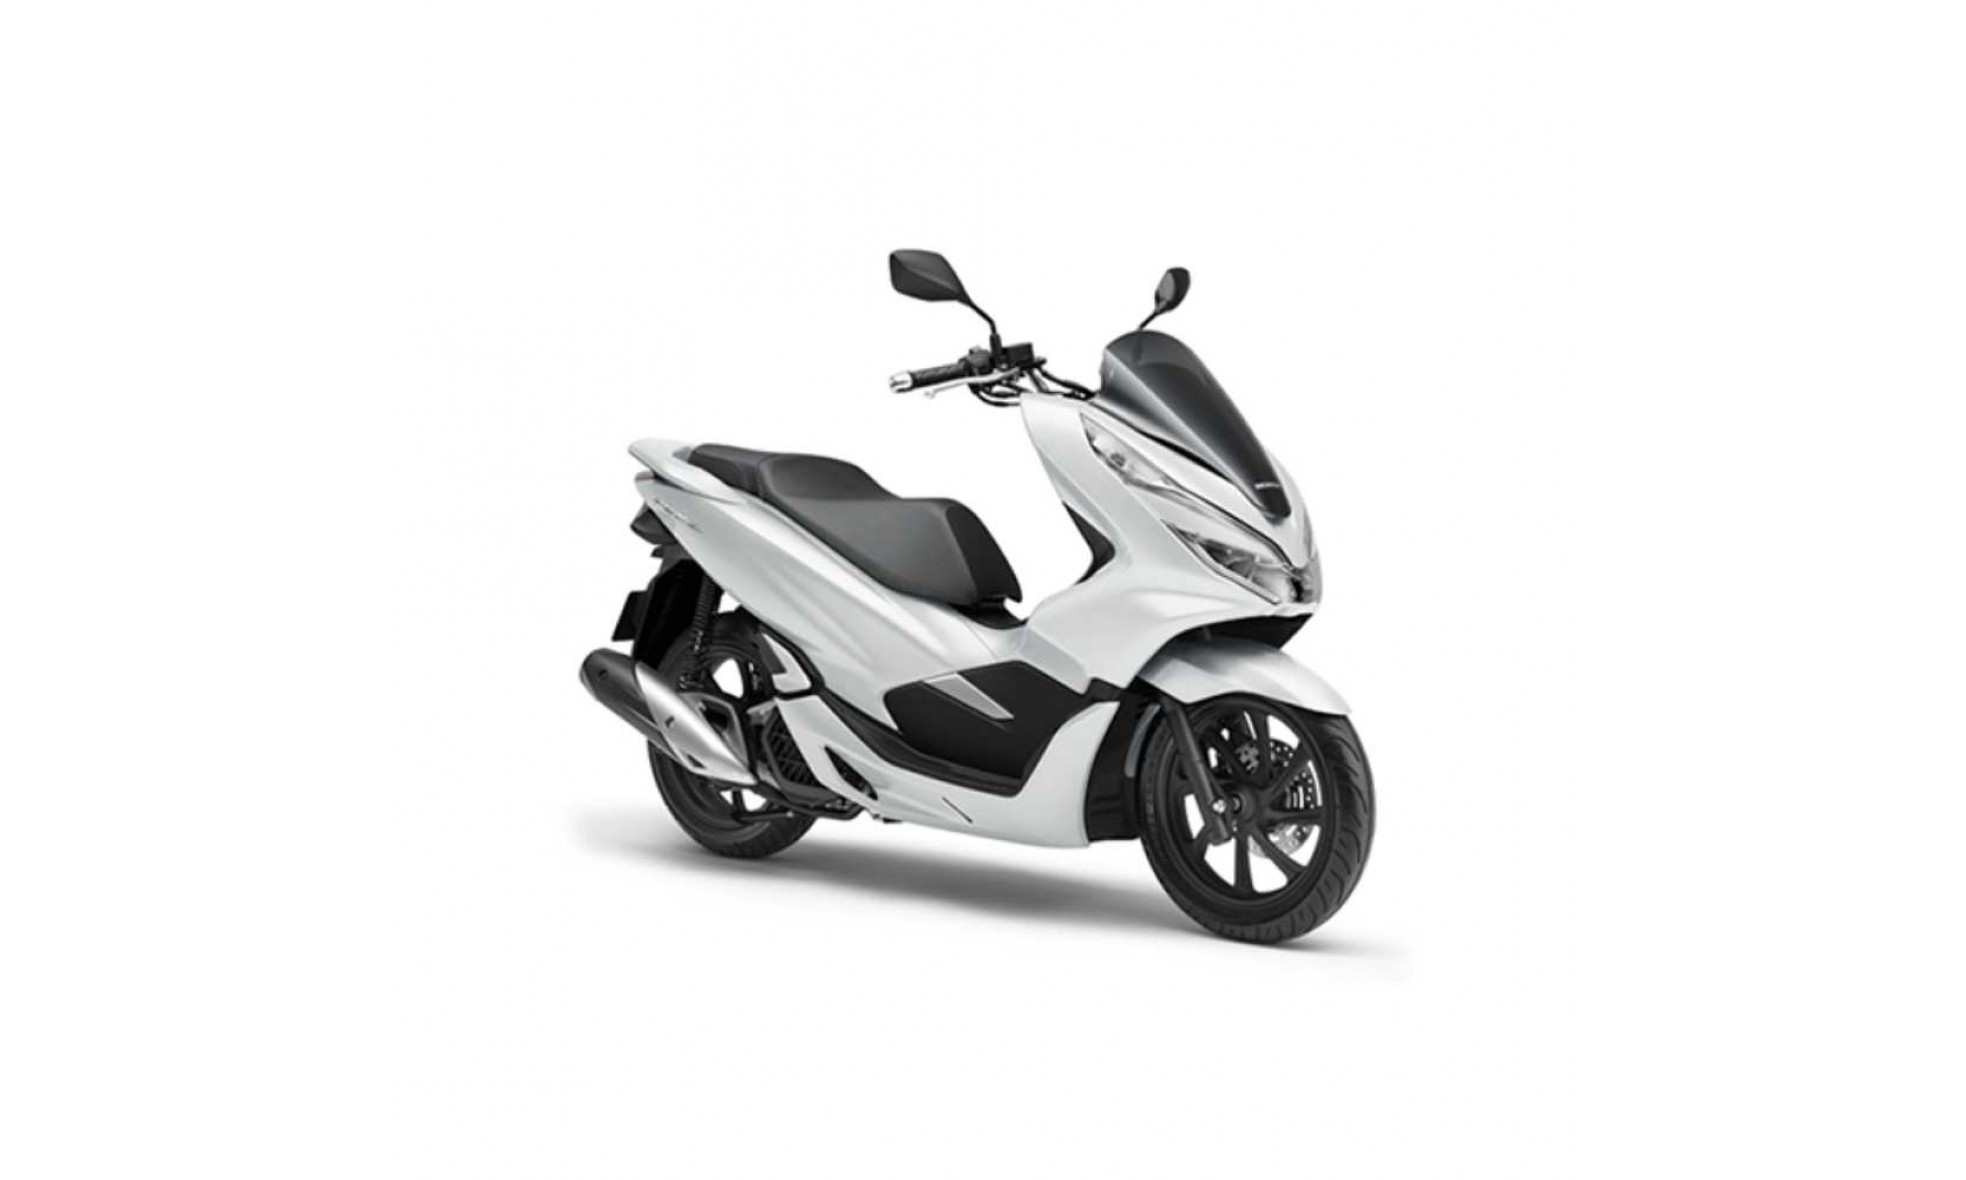 78 Concept of New 2019 Honda Pcx150 Redesign Model with New 2019 Honda Pcx150 Redesign